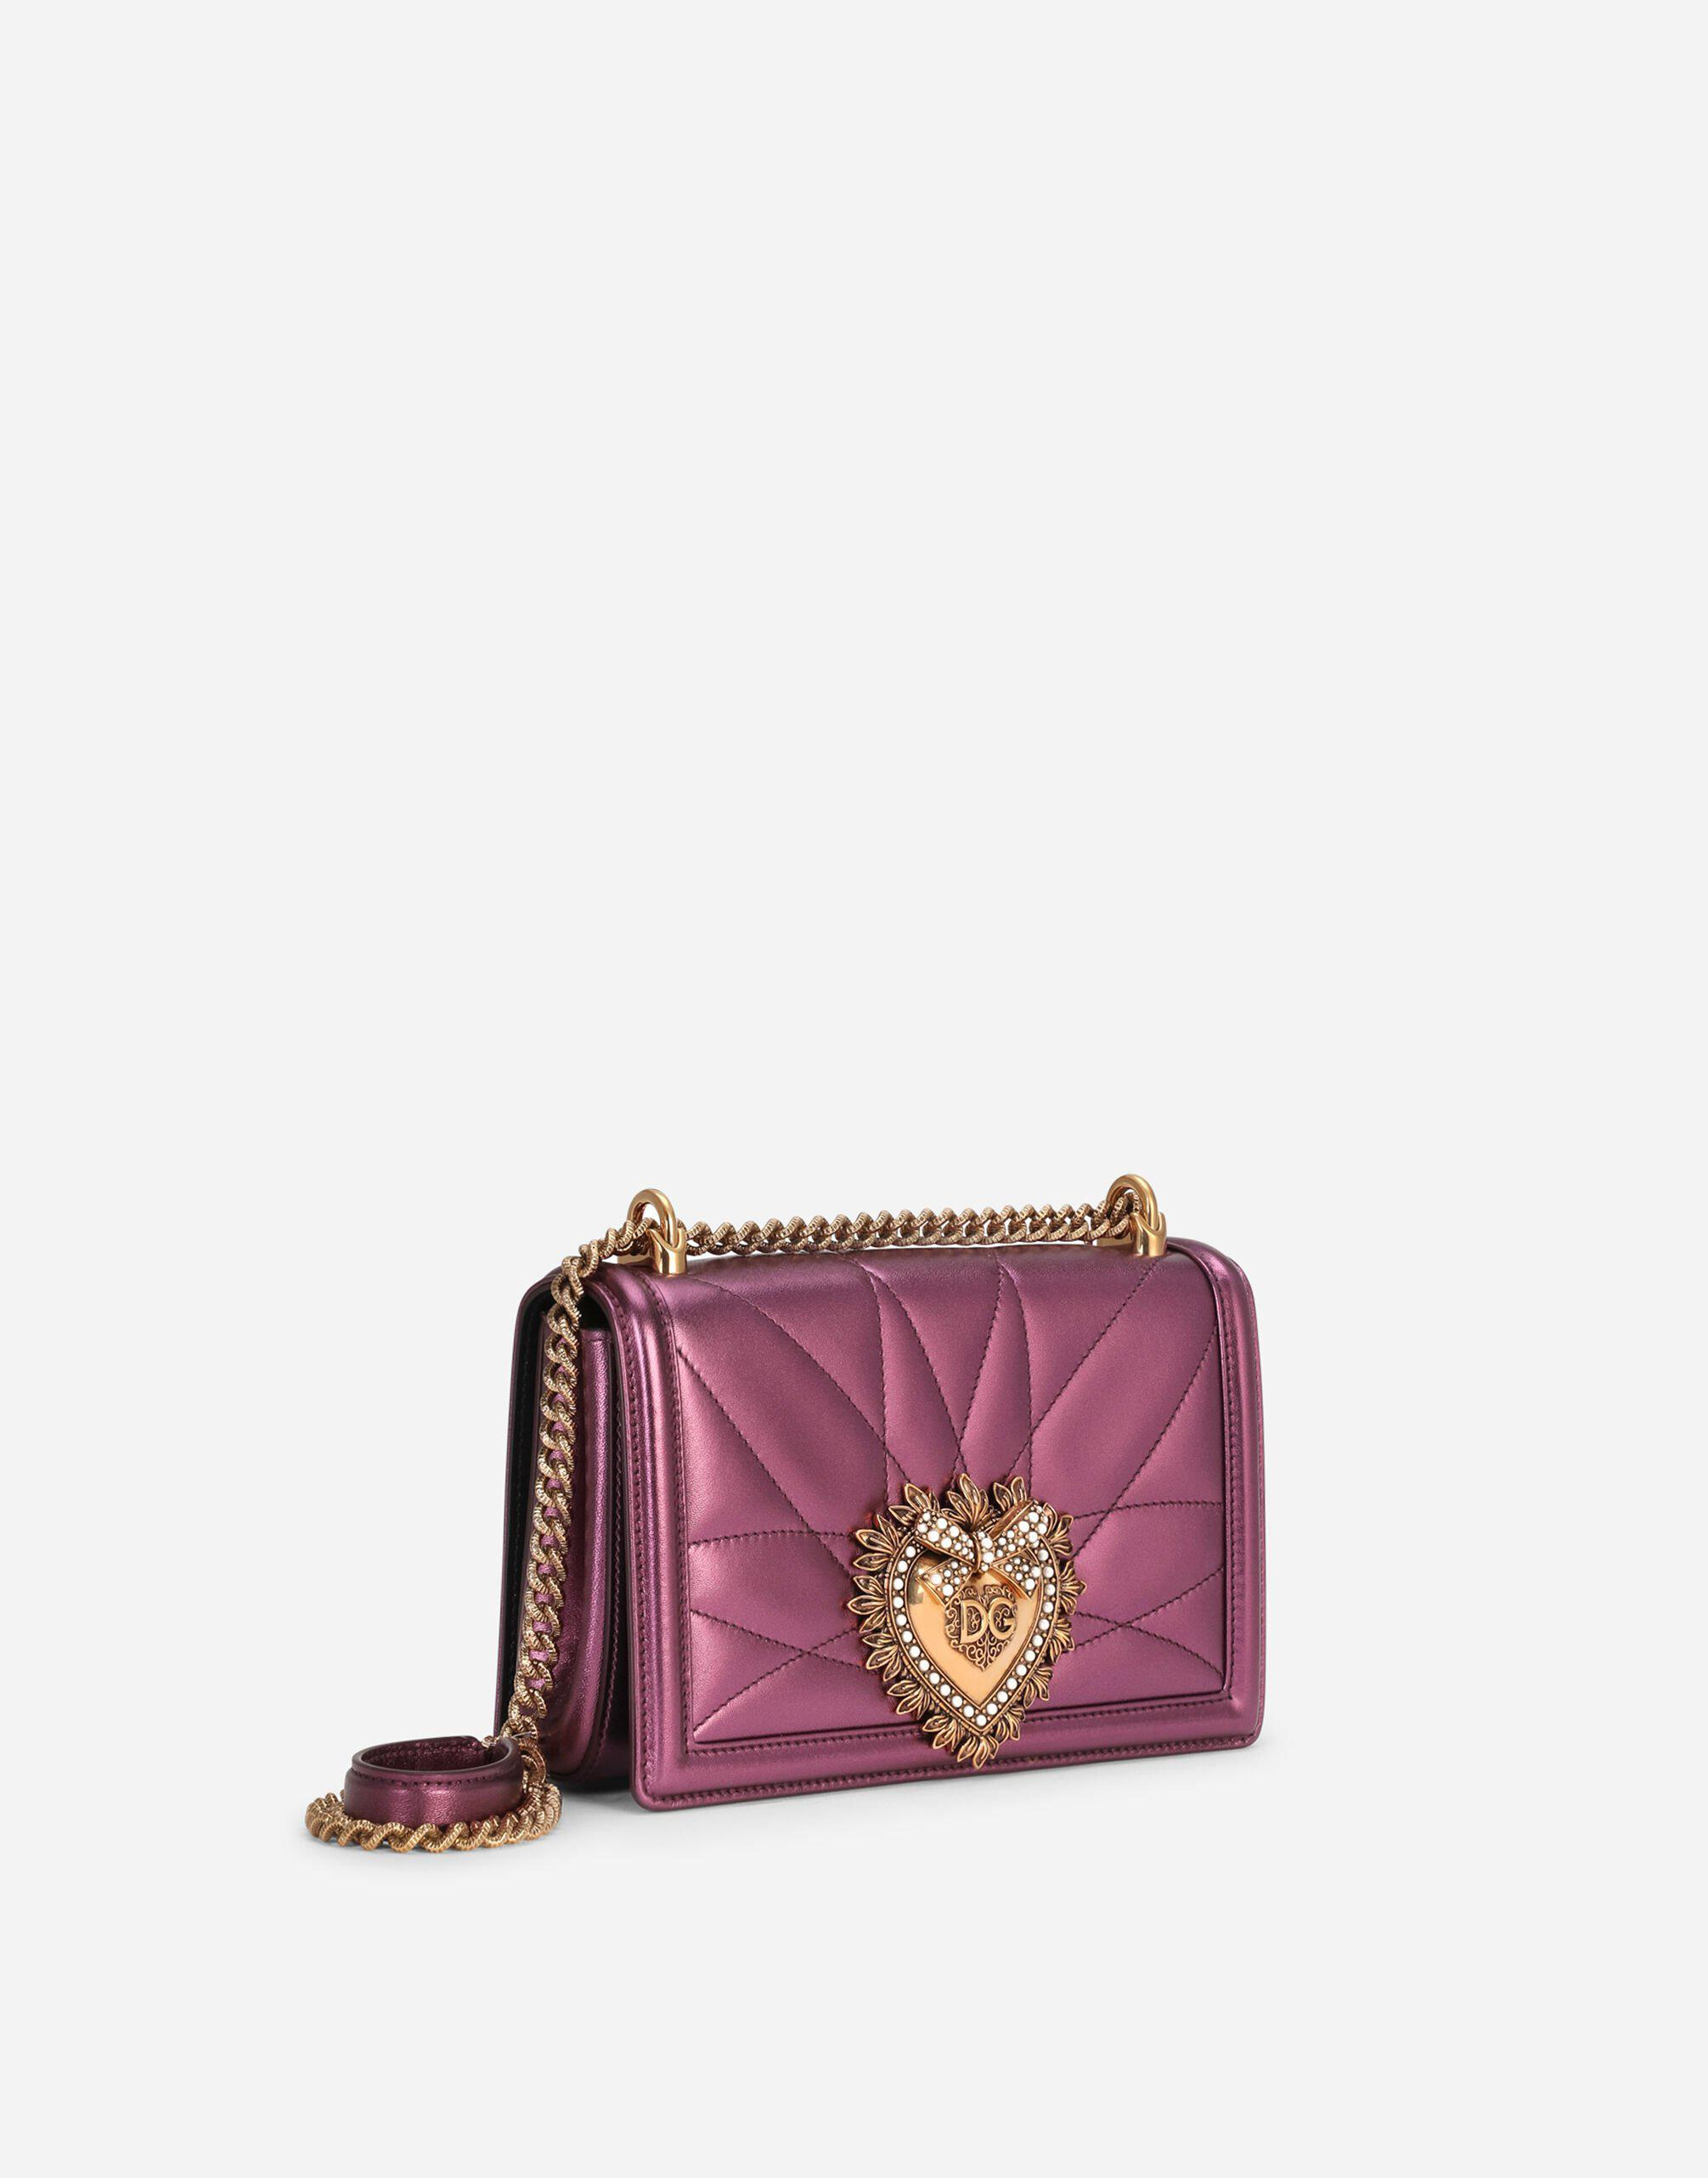 Medium Devotion crossbody bag in quilted nappa mordore leather 1